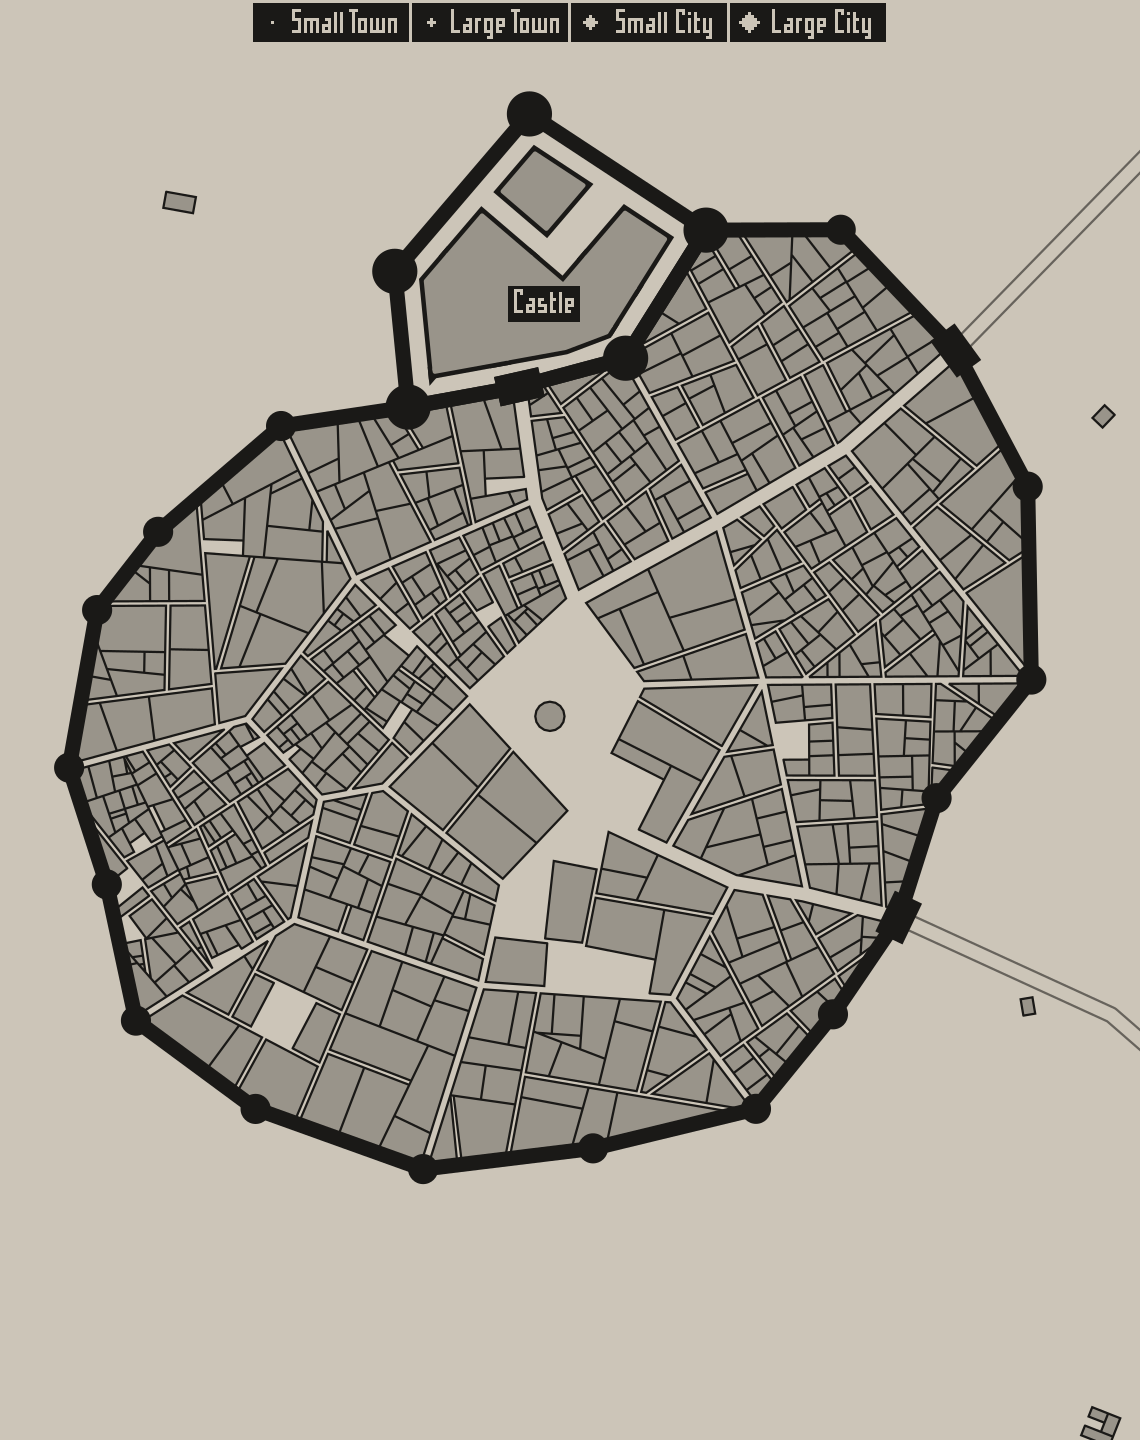 The First Post - Medieval Fantasy City Generator by watabou